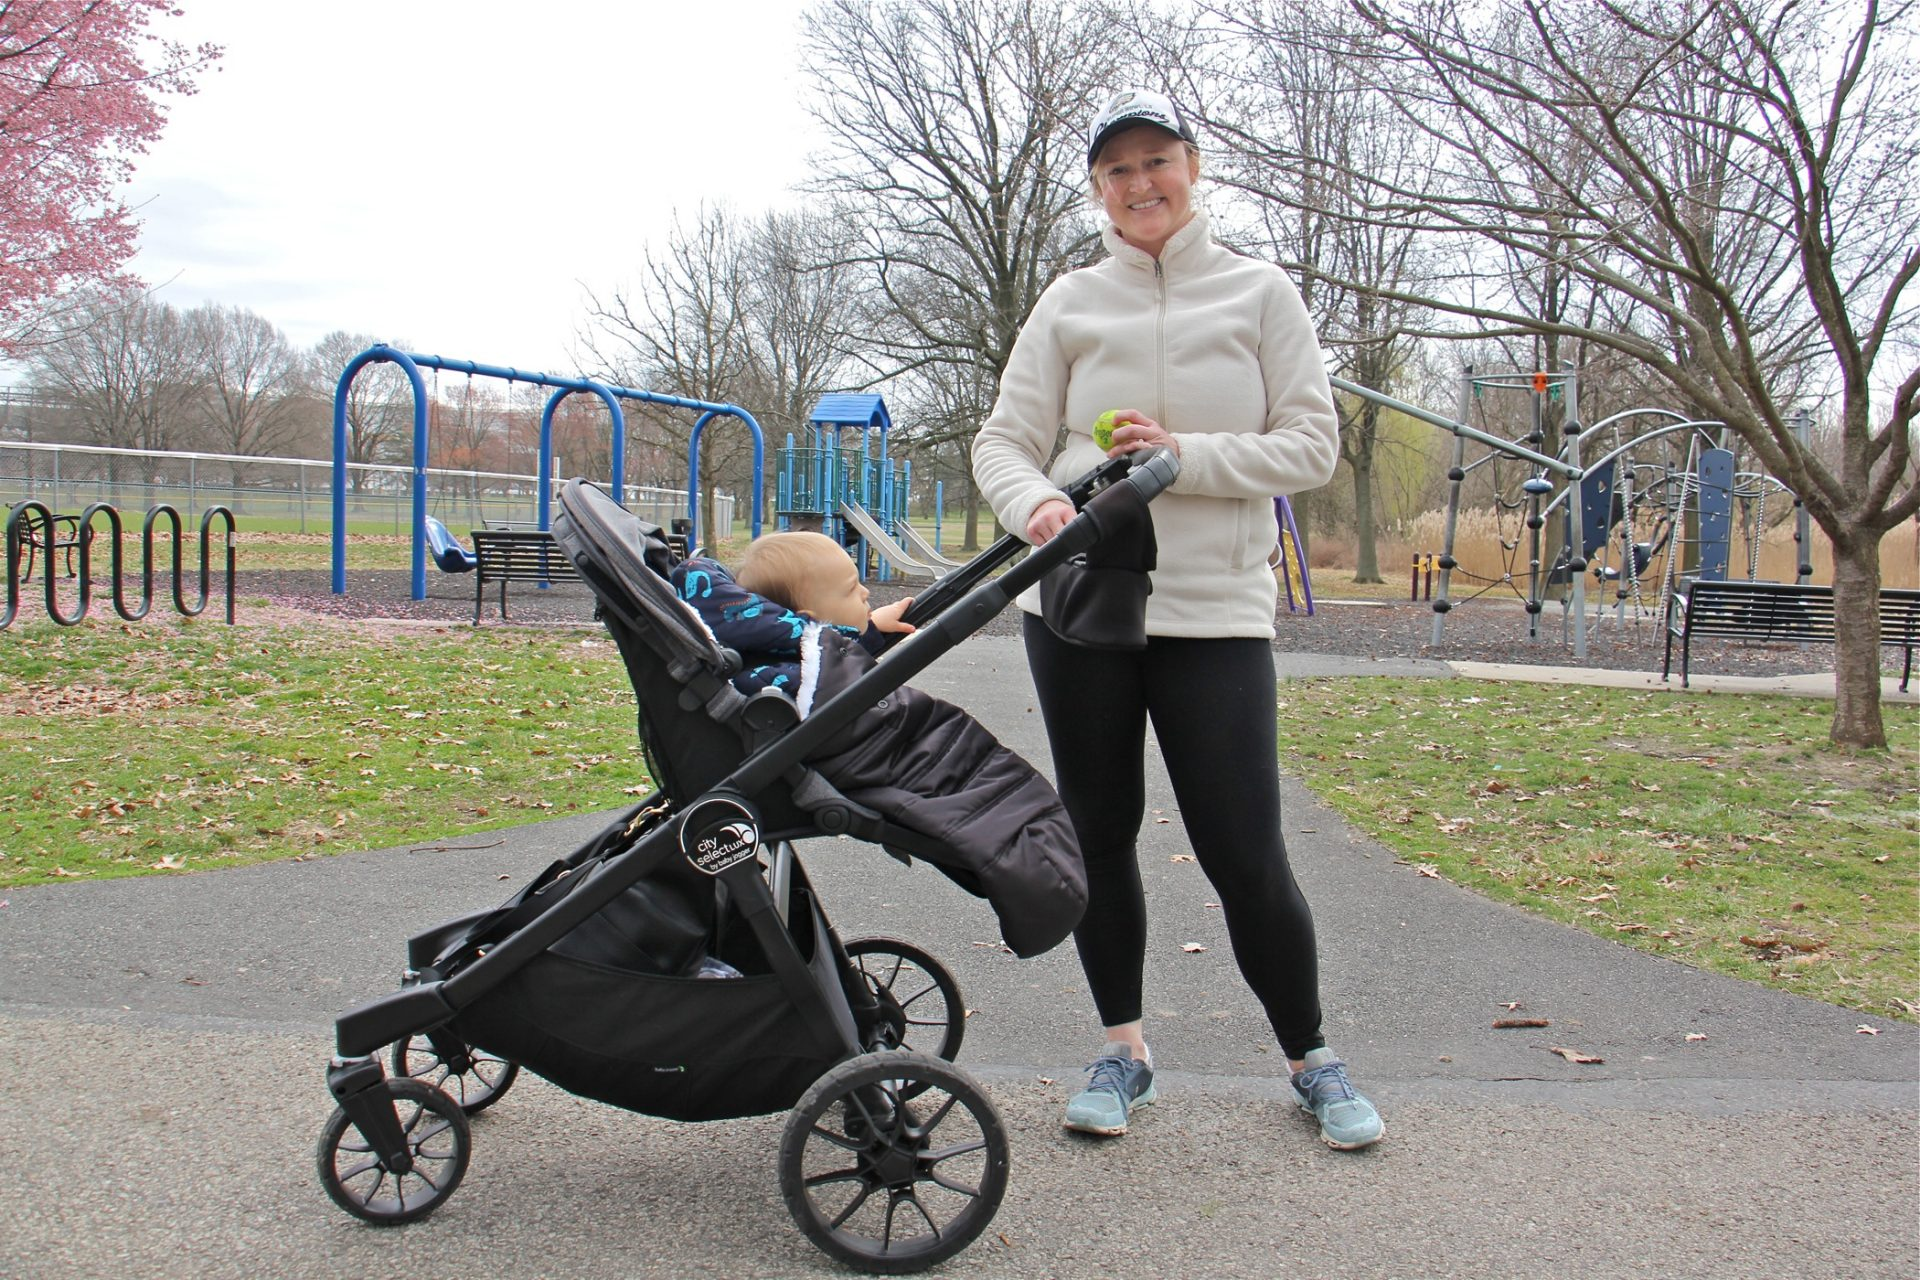 Veronika Ferris visits FDR Park in South Philadelphia with her 1-year-old son.